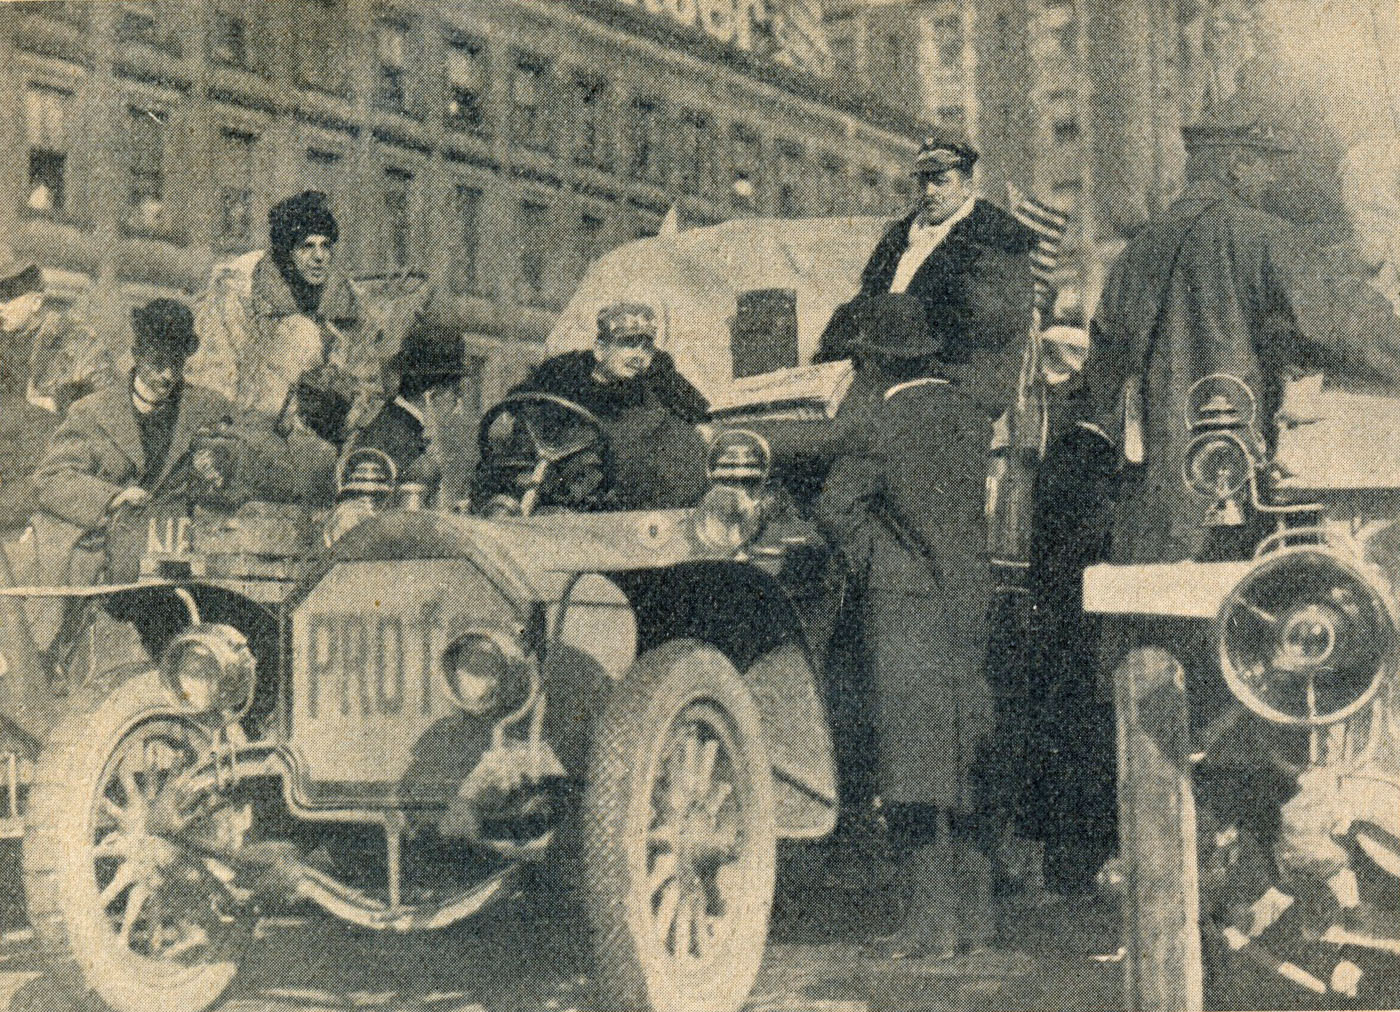 autorennen-um-die-welt-marz-1908_start-protos-new-york